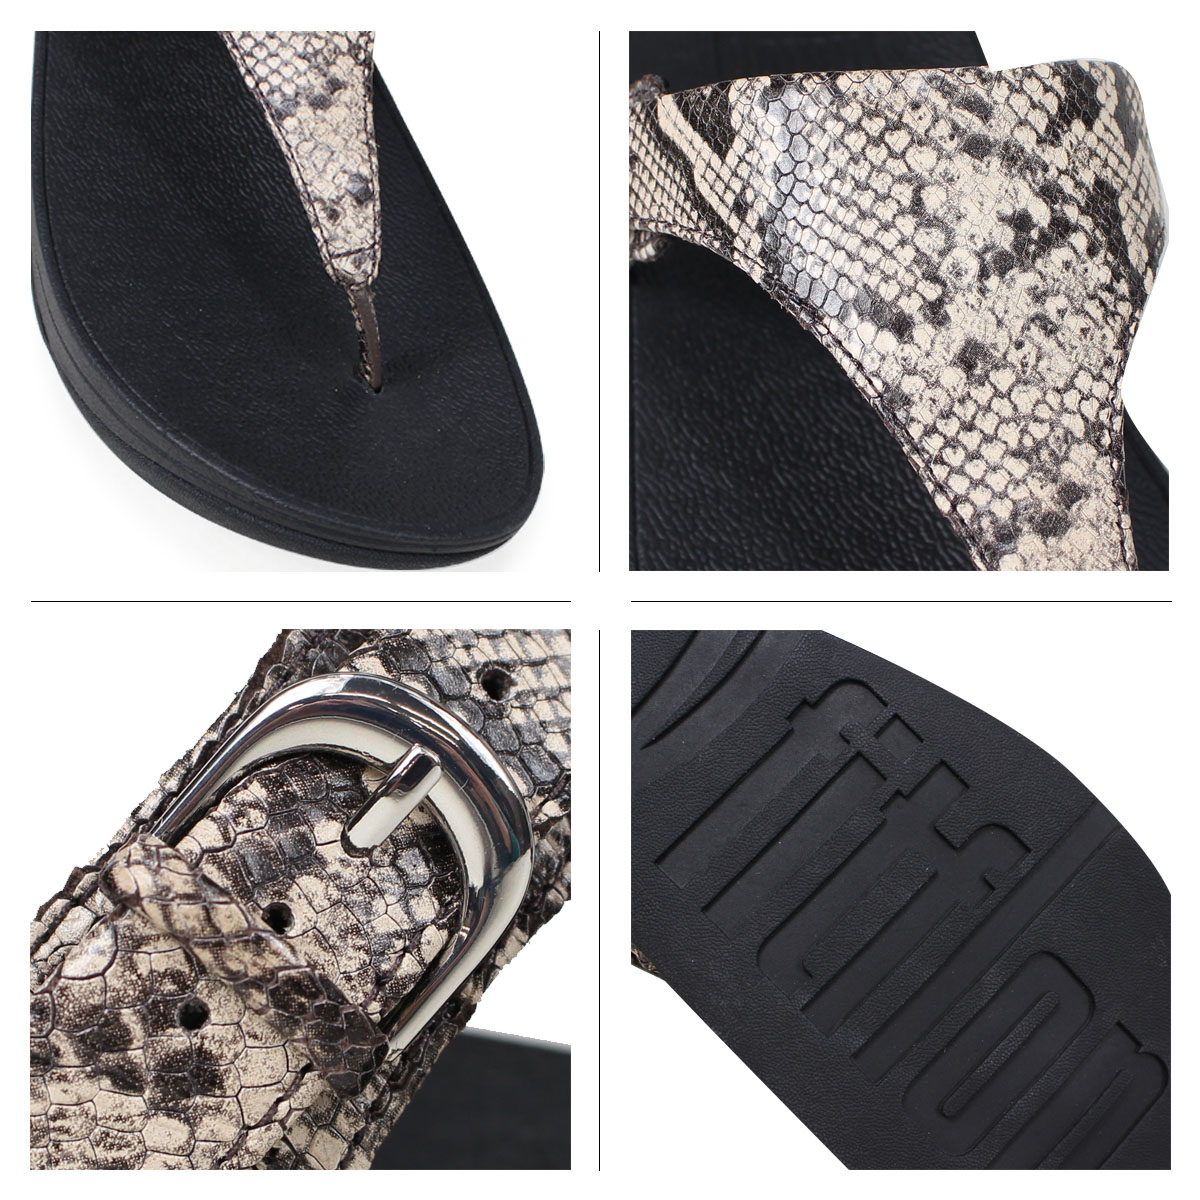 ca989db9db8413 FitFlop SKINNY TOE-THONG SANDALS SNAKE PRINT LEATHER sandals fitting FLOPS  Kinney Lady s L69 black  4 4 Shinnyu load   184